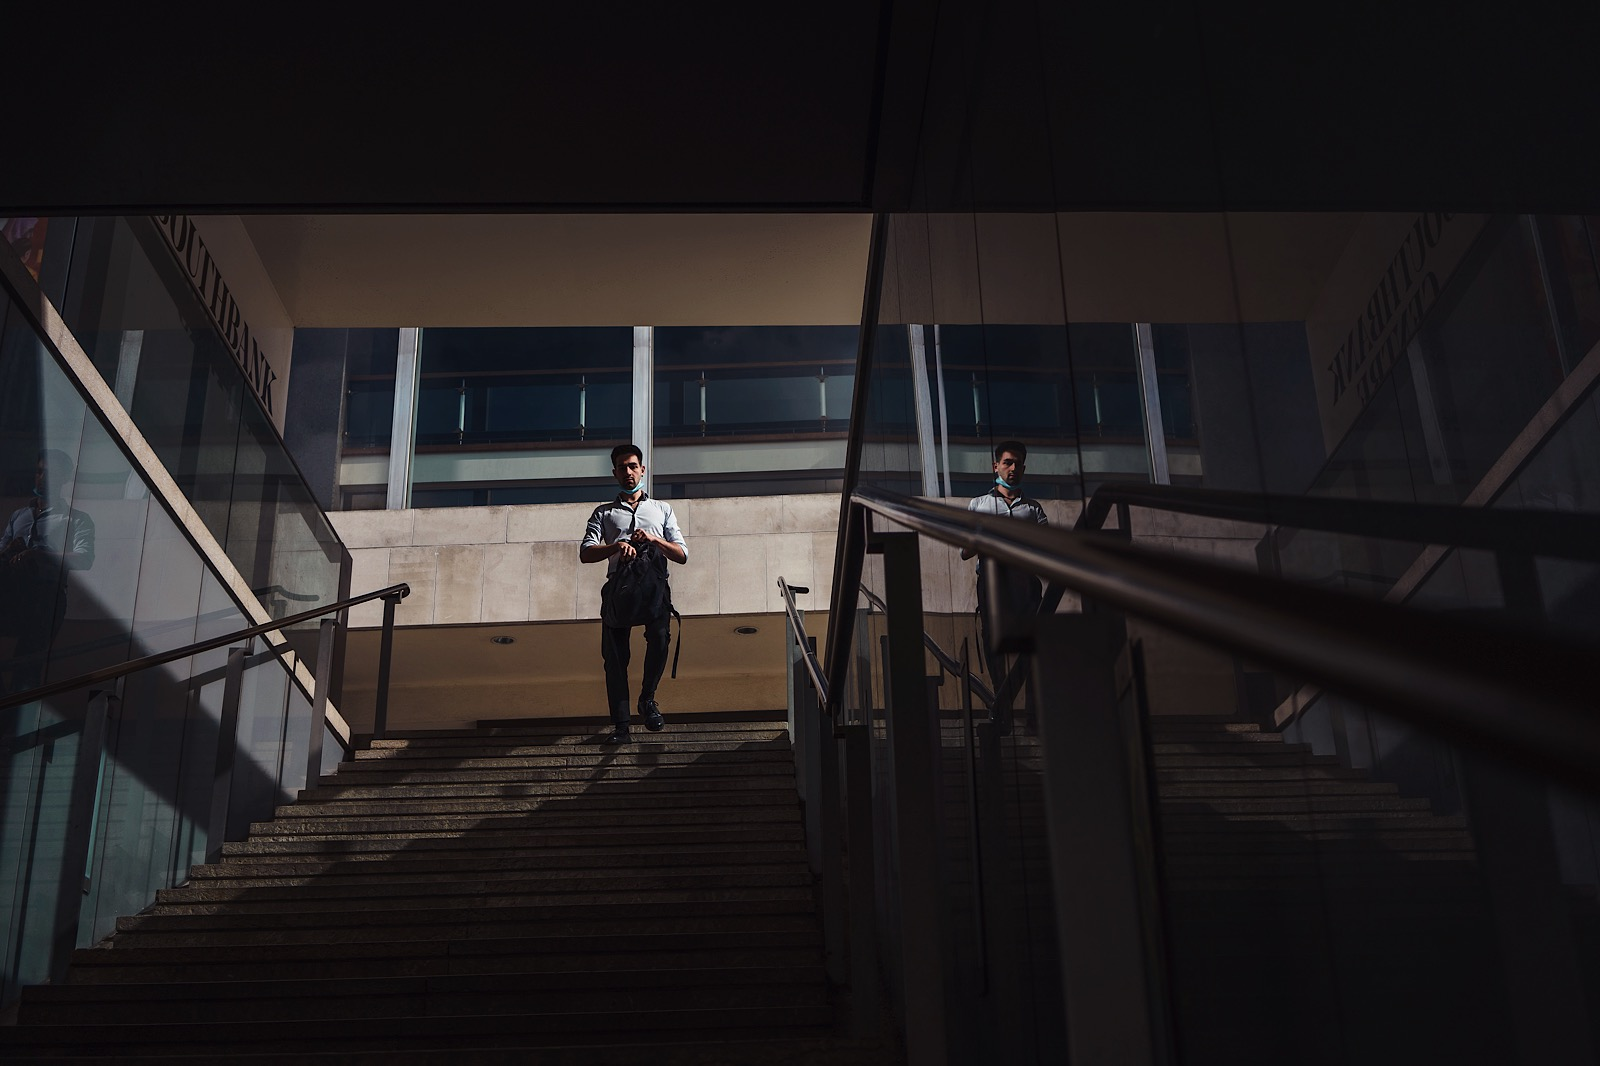 Street photography showing man running down stairs